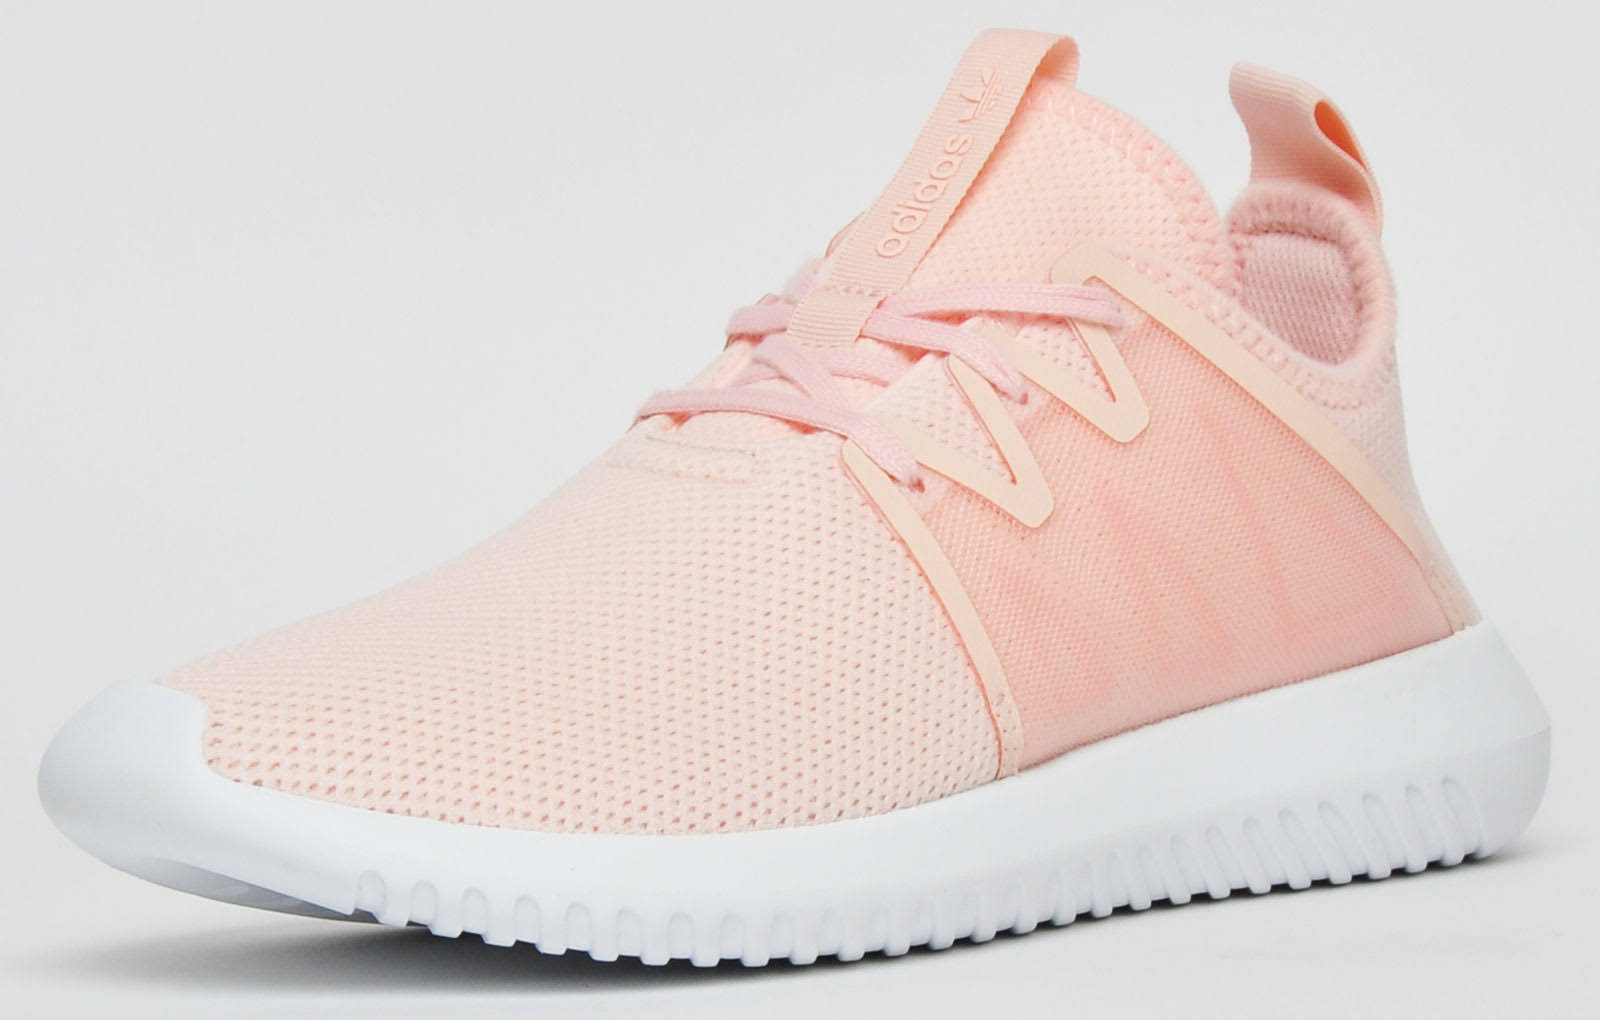 Adidas Originals Tubular Viral Womens Trainers, Size 7 in Pink / White